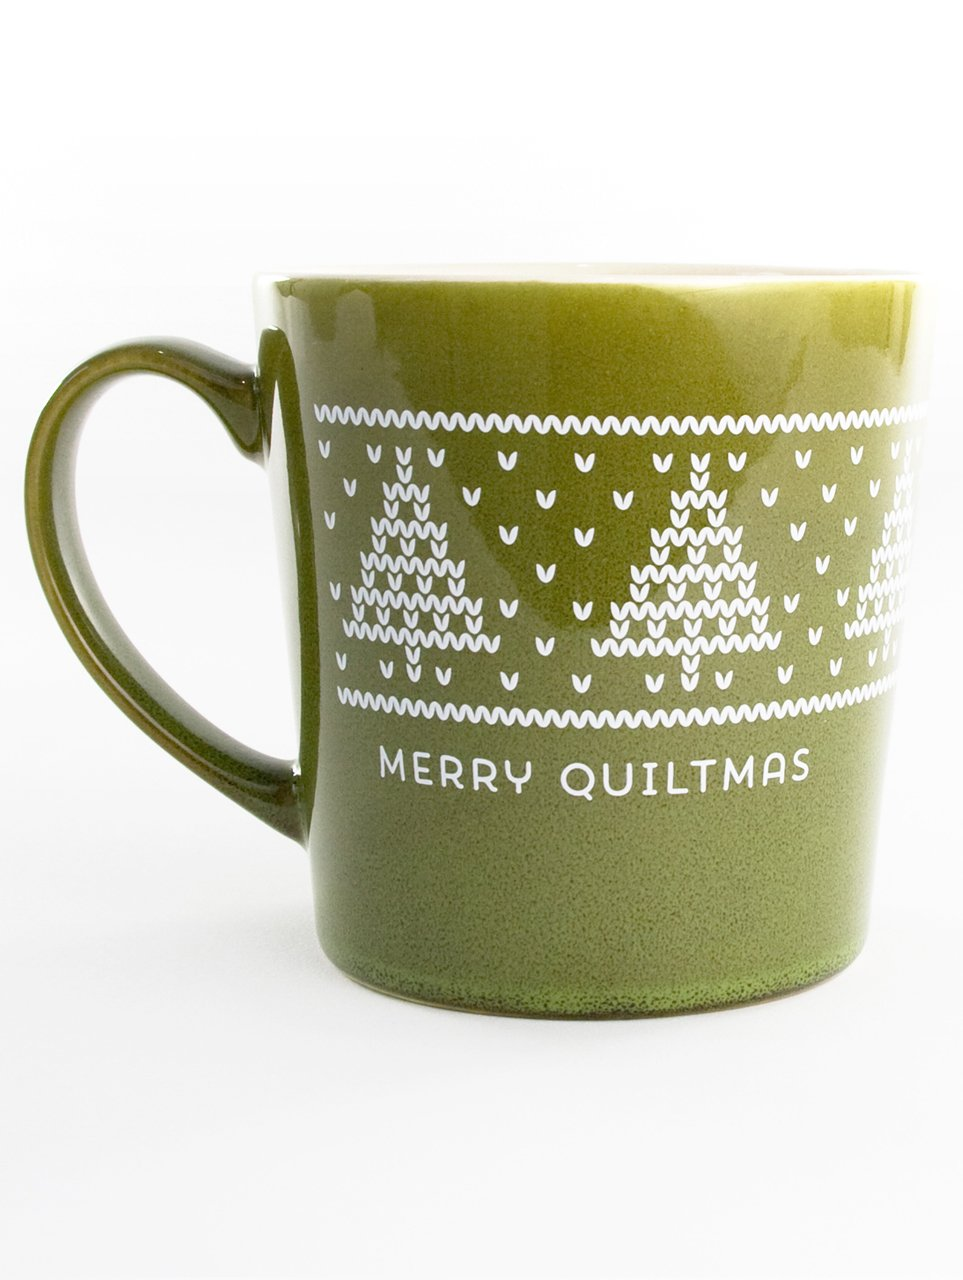 Quilt Happy Merry Quiltmas Mug - Green 16oz